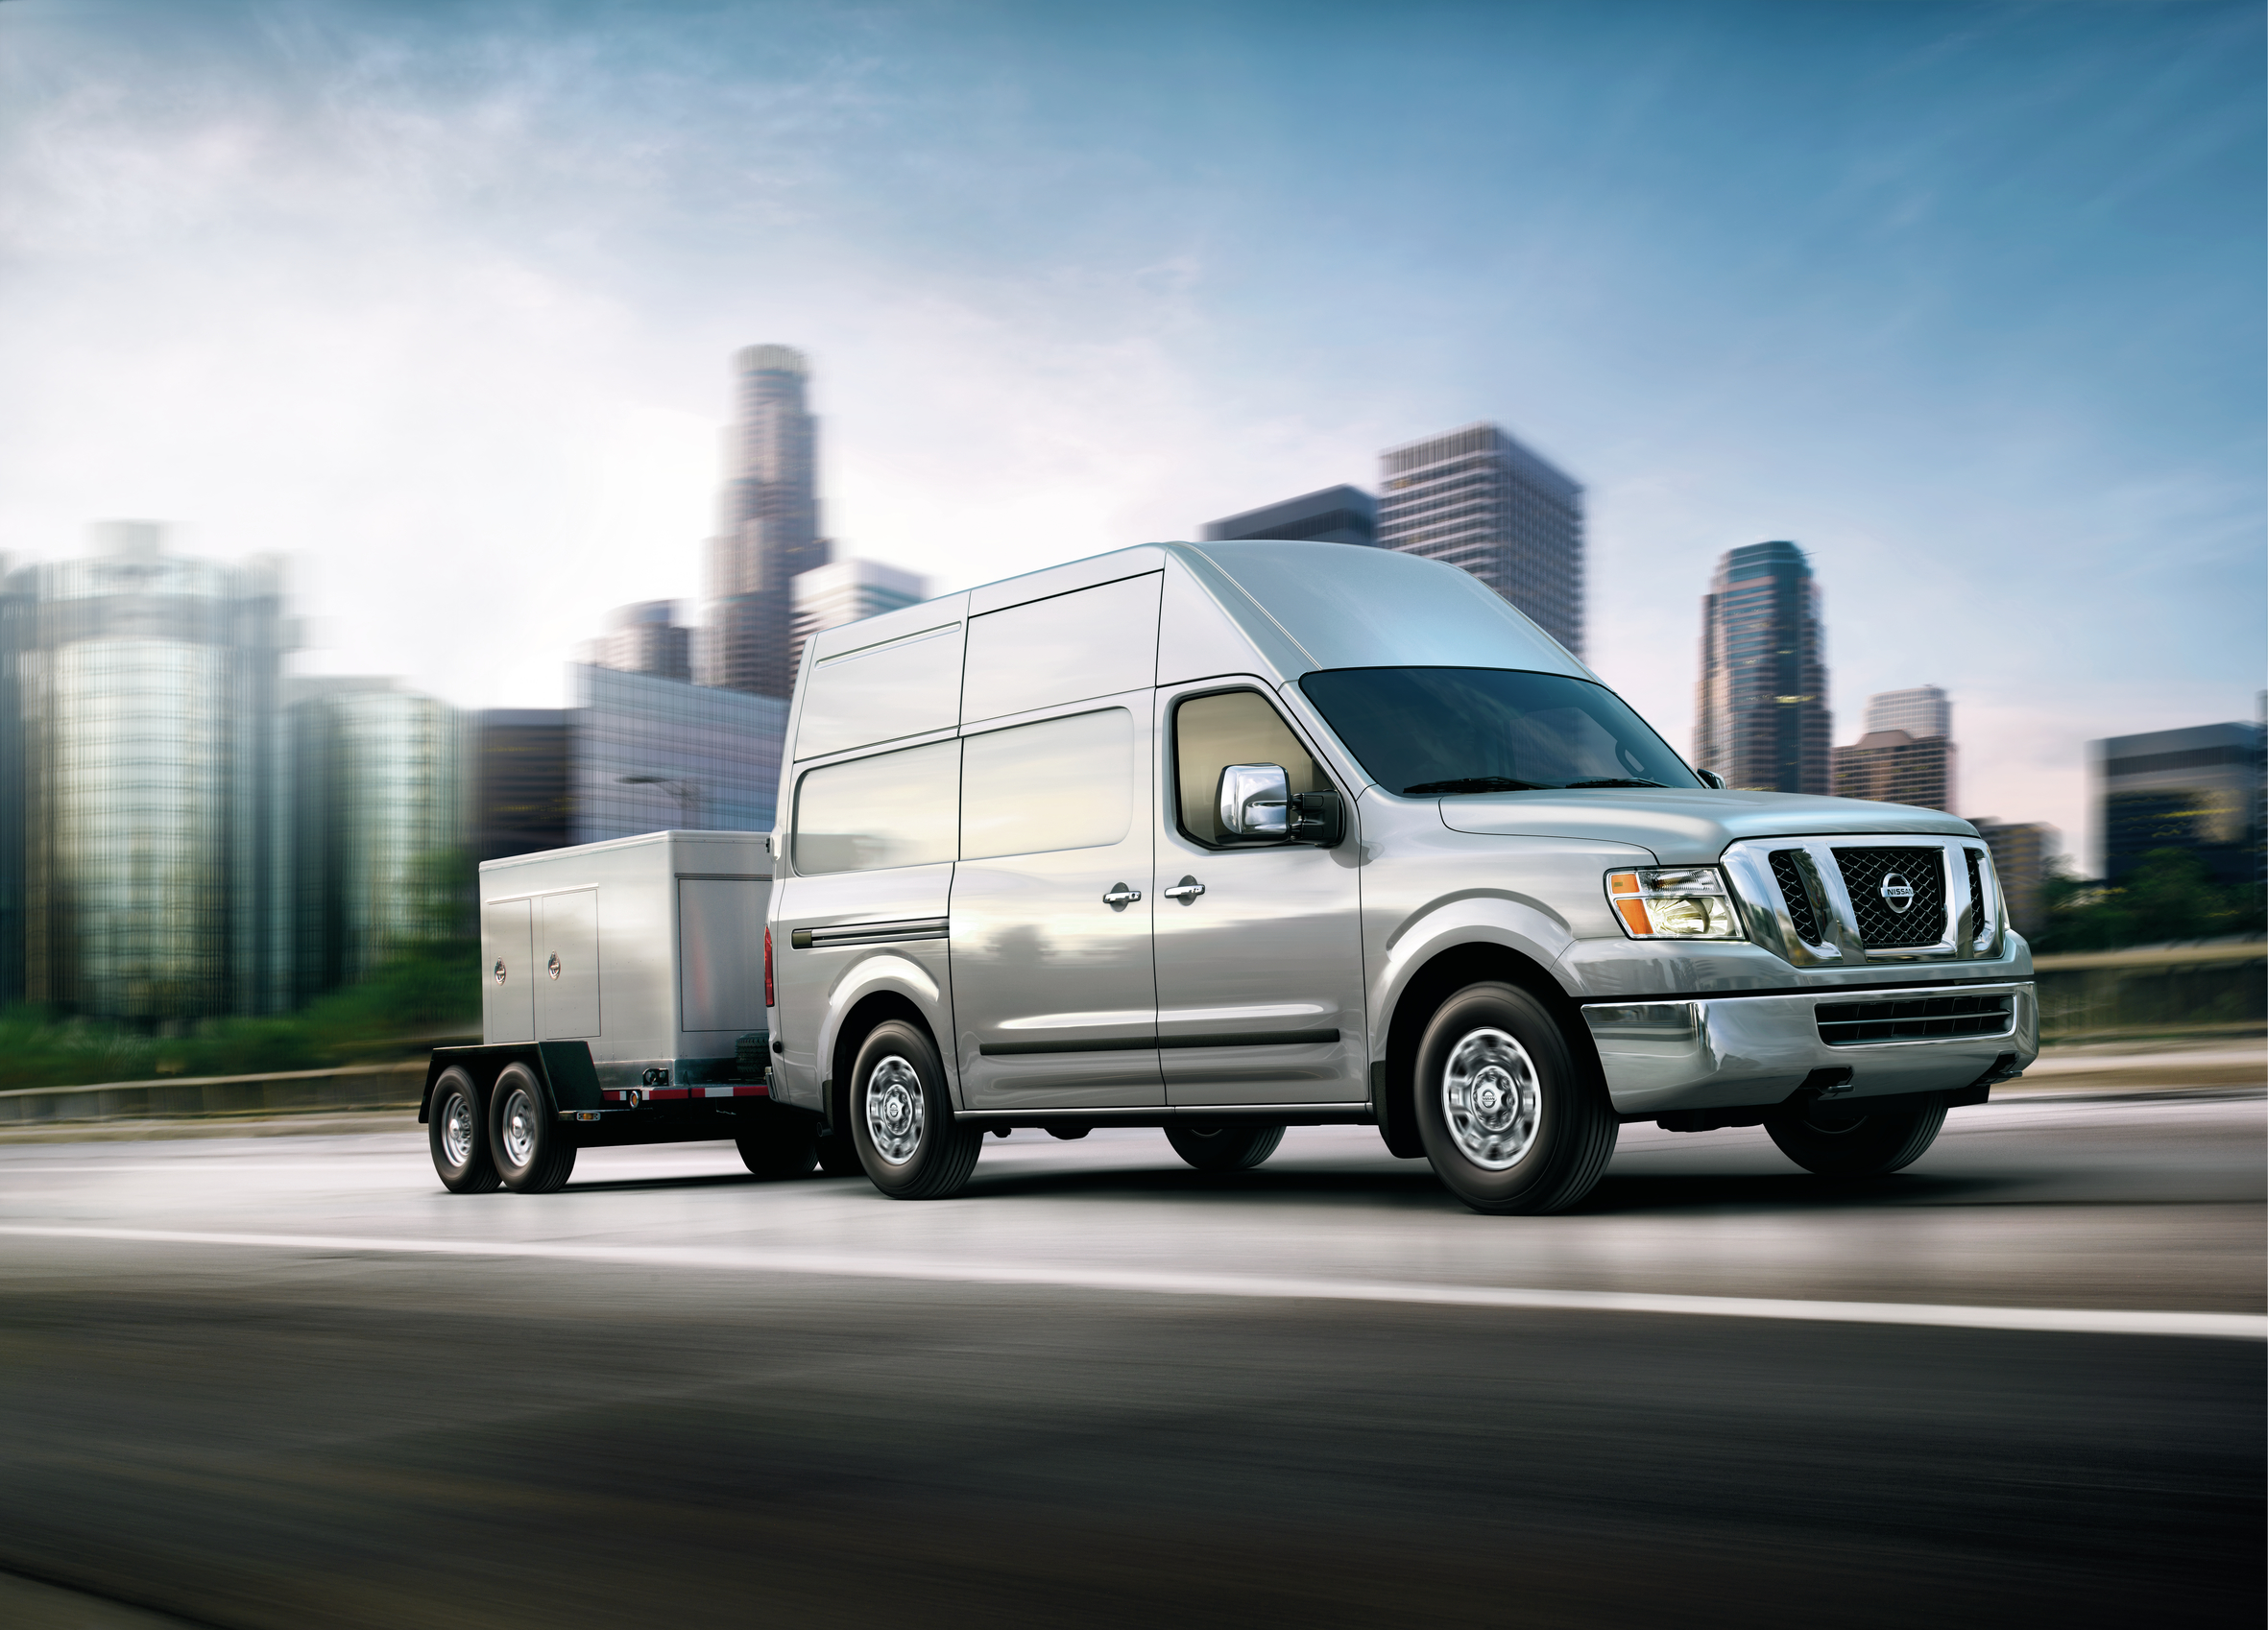 Nissan Announced Pricing For The 2019 Nv Cargo Van And Penger Both Models Are Available Now At Select Commercial